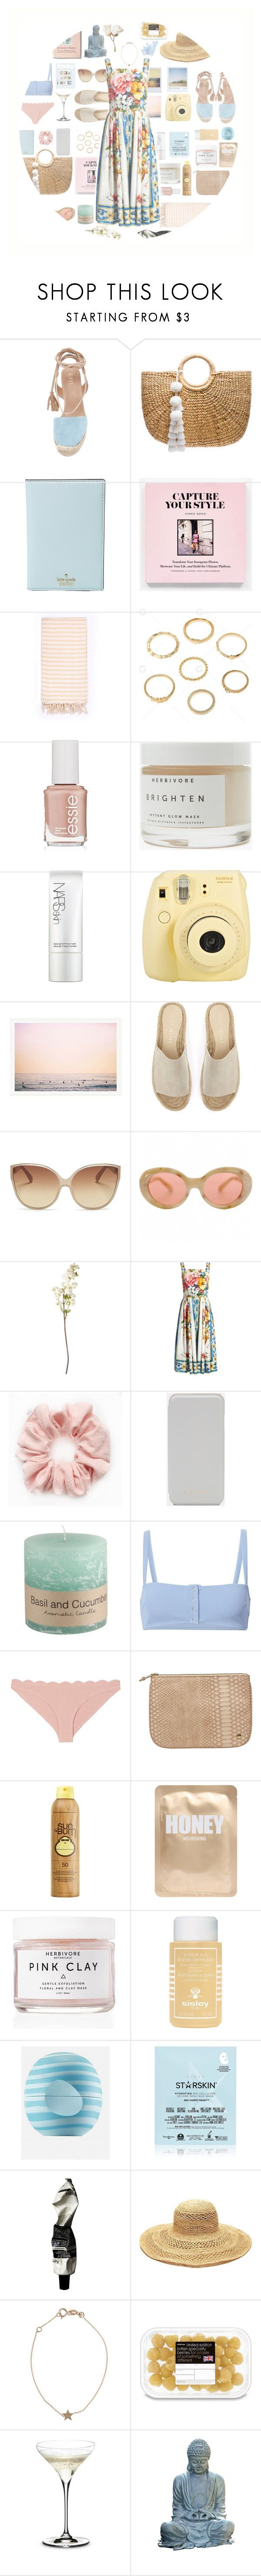 """.245"" by sweet-sour-98 on Polyvore featuring JADEtribe, Kate Spade, Turkish-T, Essie, Herbivore, NARS Cosmetics, Fuji, Polaroid, Mint Velvet and Linda Farrow"